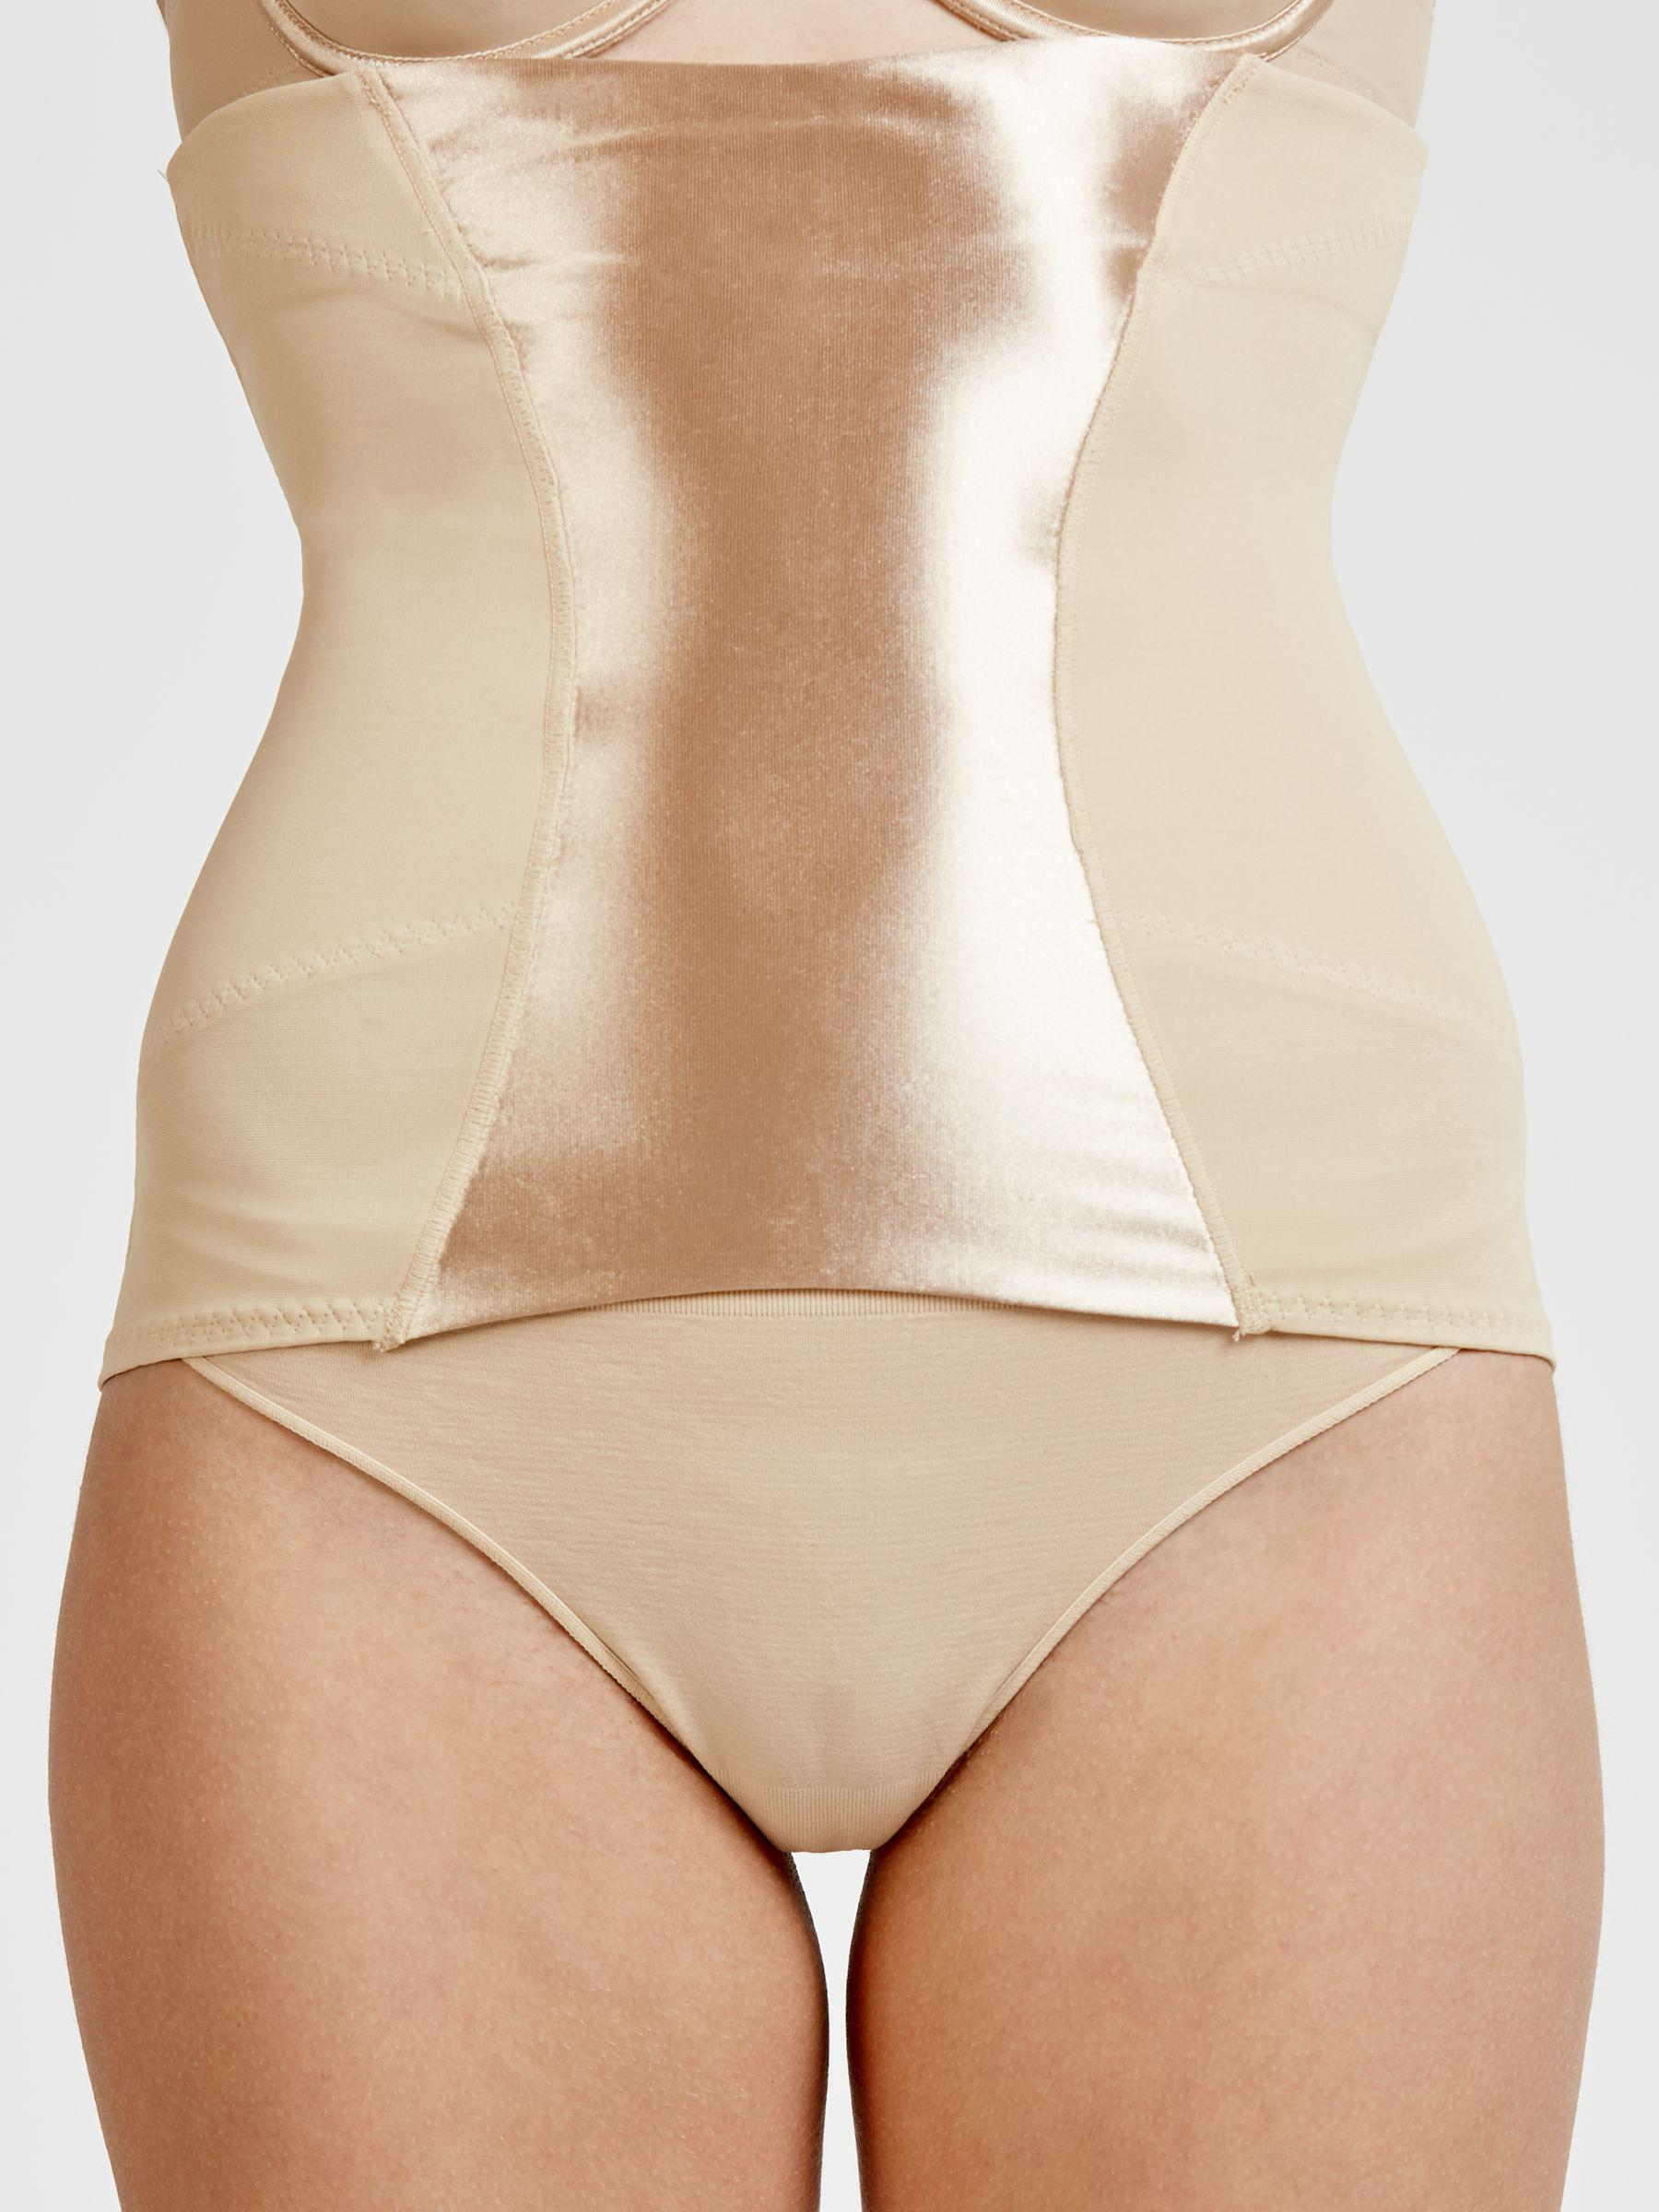 e34fef77c6 Maidenform Easy Up Waist Nipper in Natural - Lyst